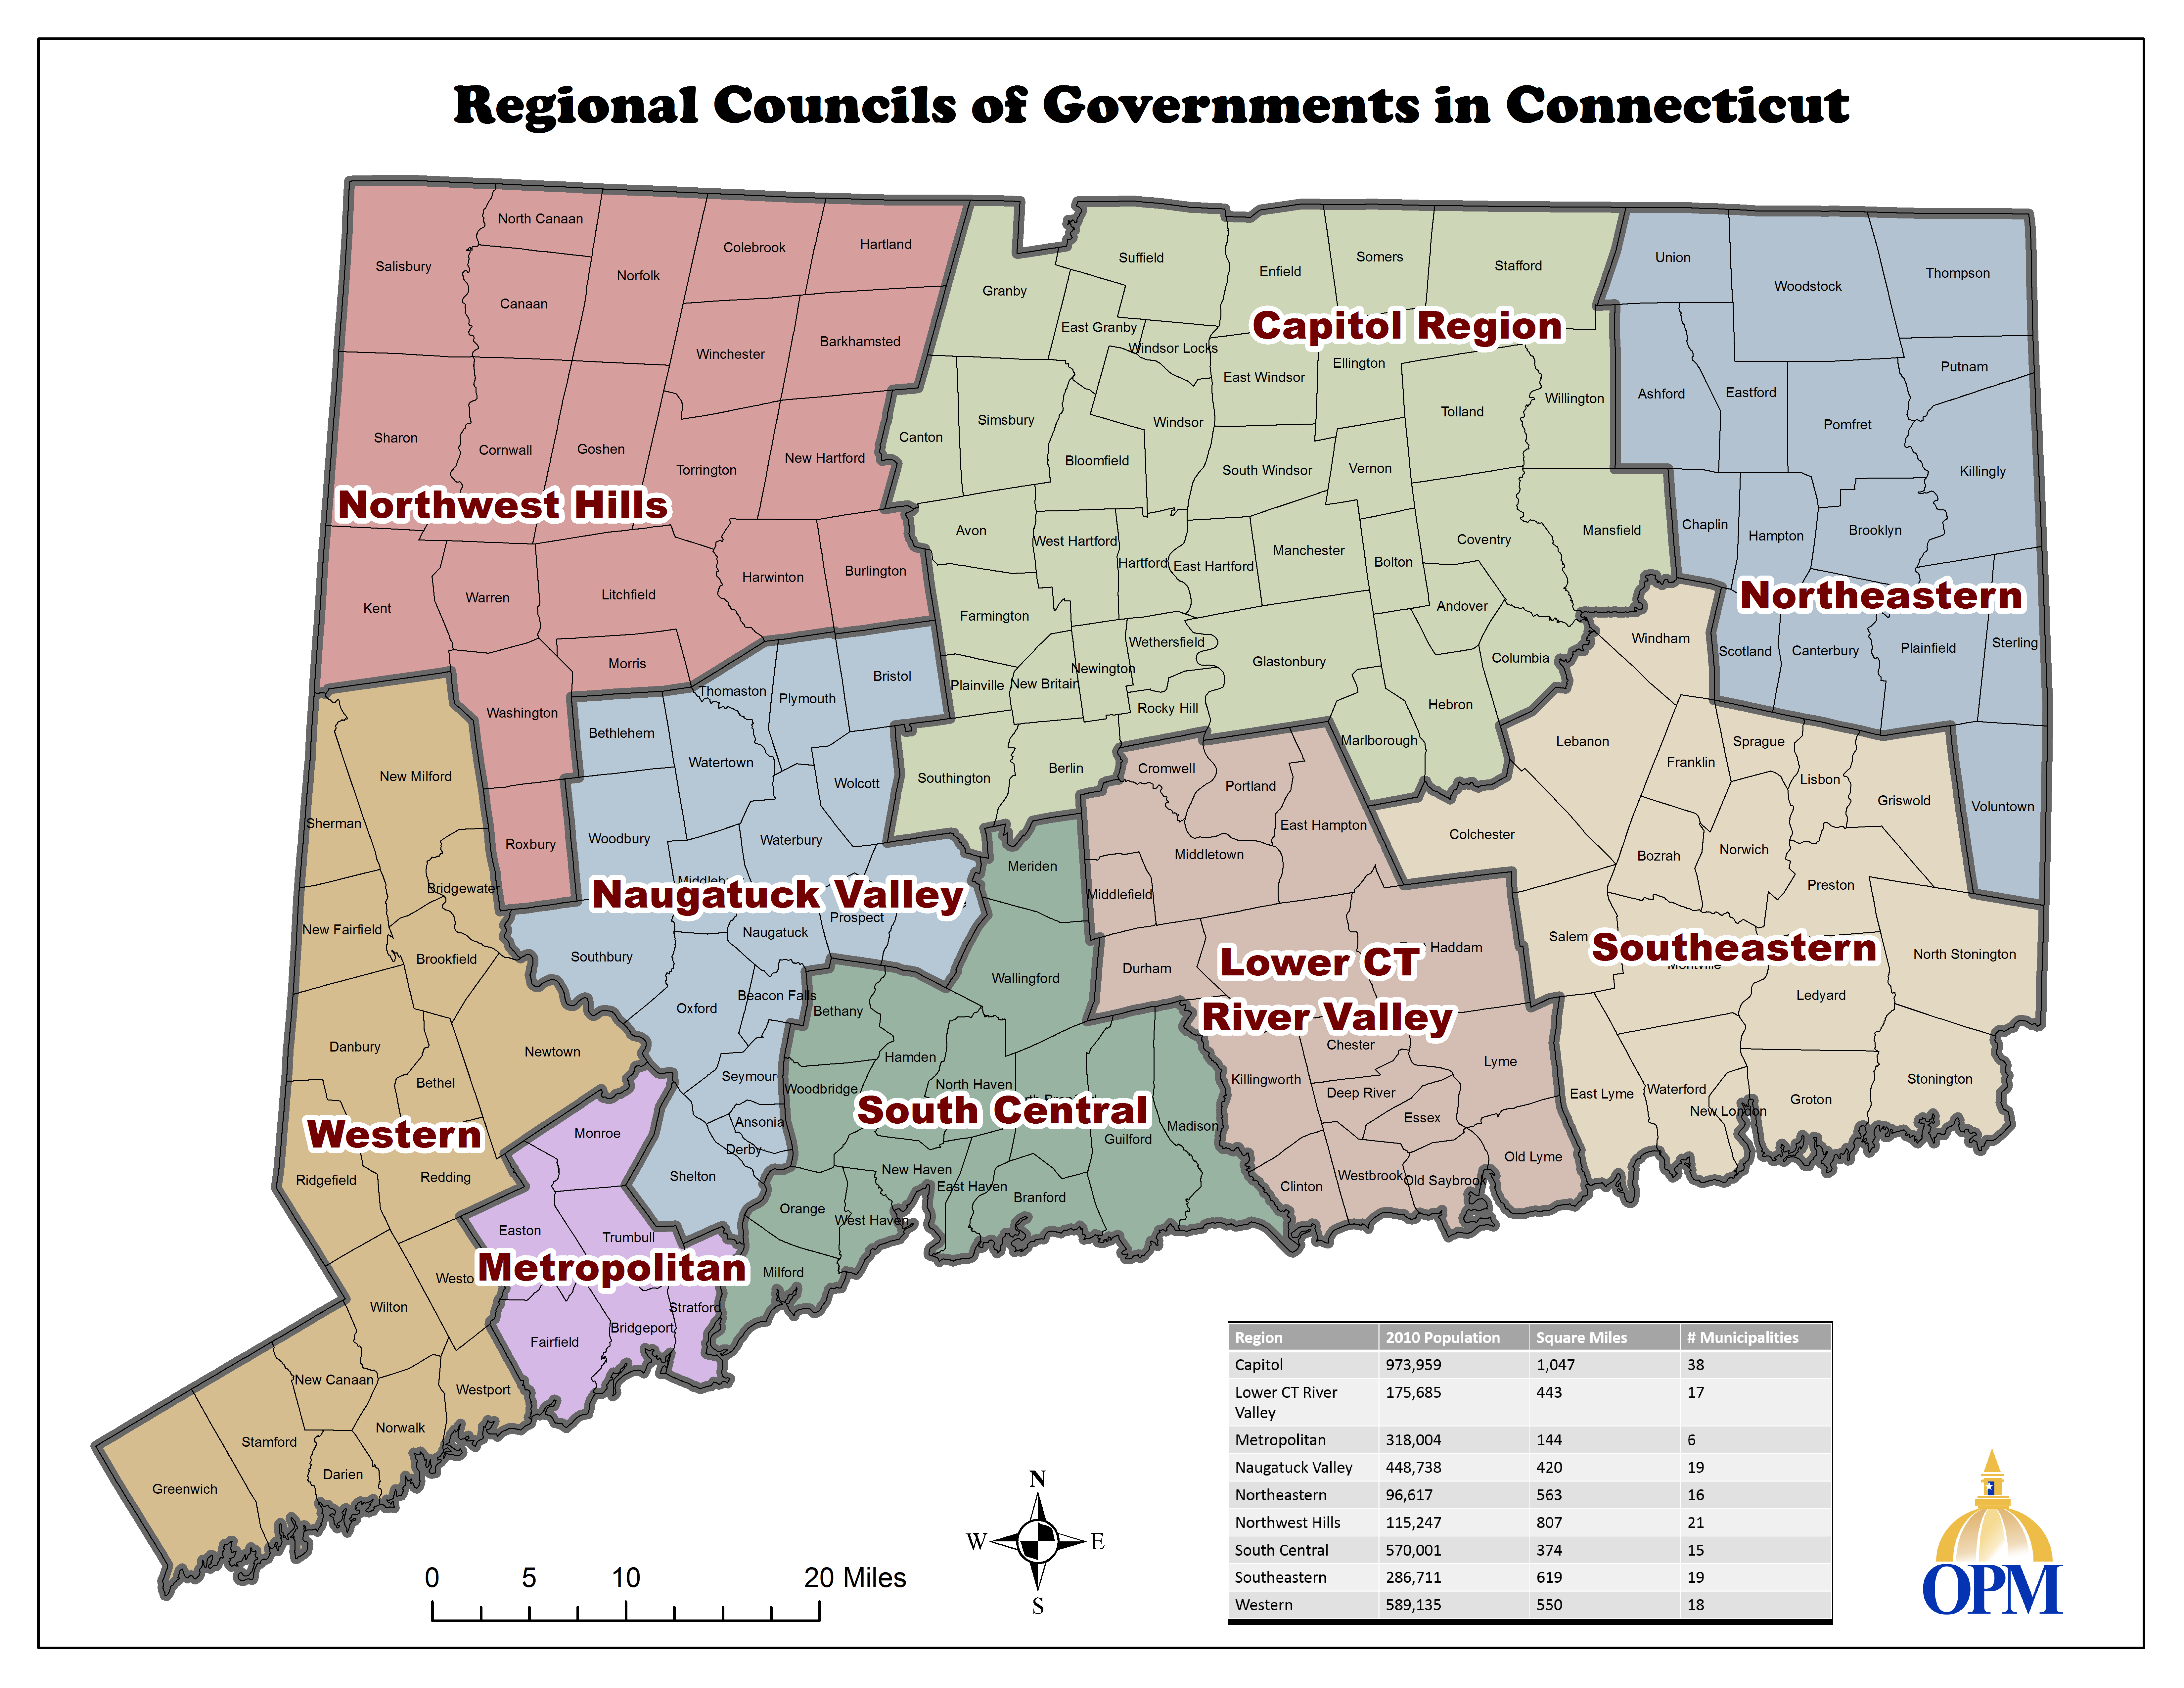 Regional Councils of Governments in Connecticut